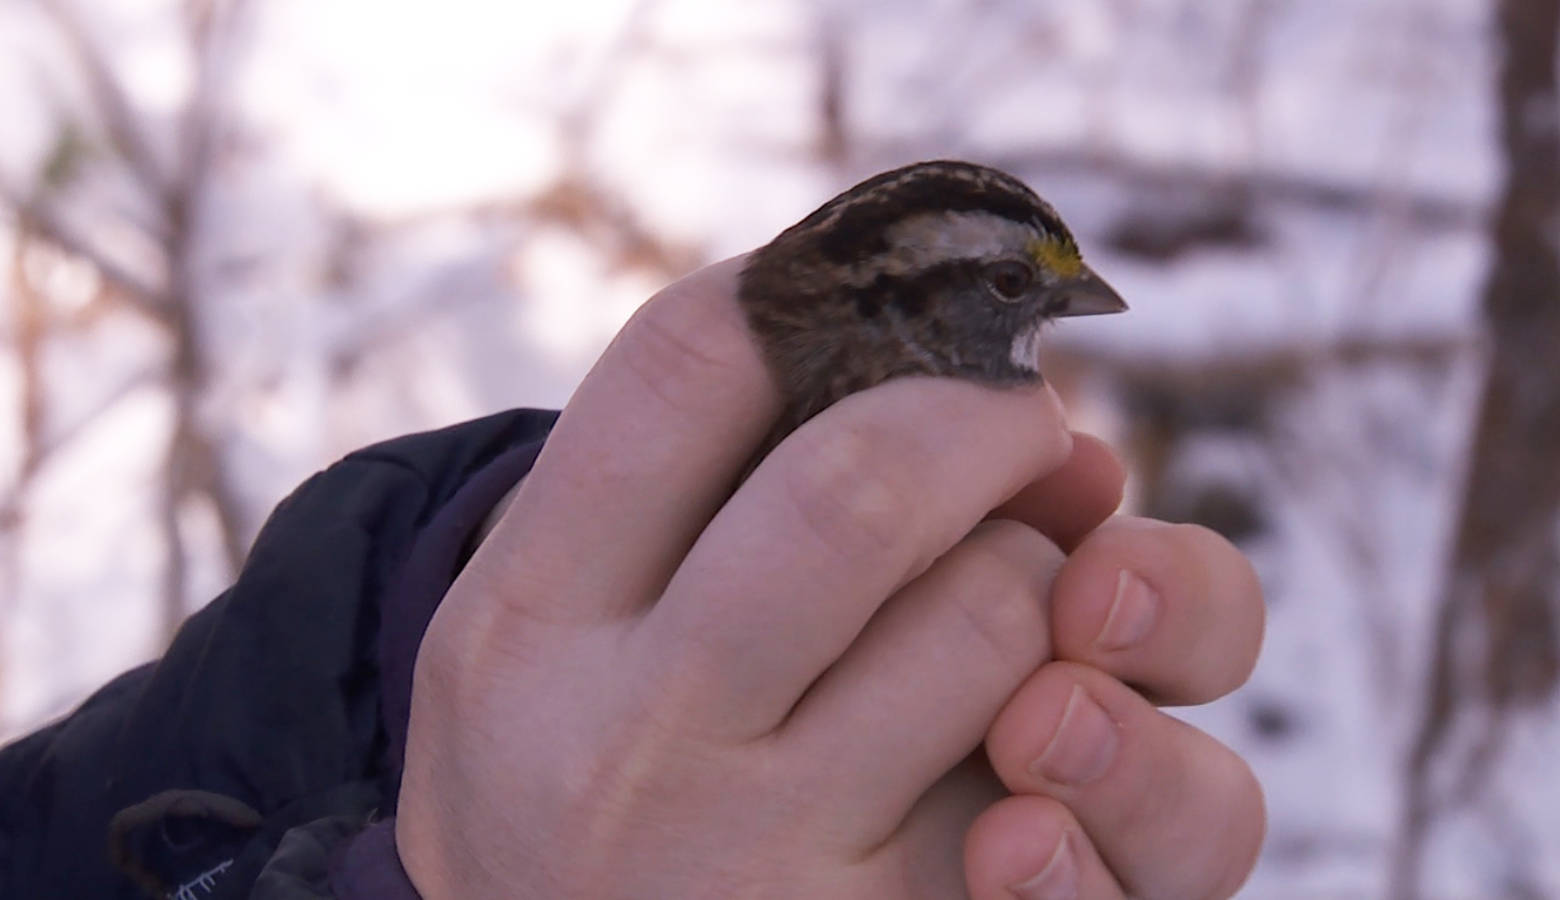 Indiana University PhD student Katie Talbott sets a sparrow free at IU's migration research lab. (Seth Tackett/WTIU)